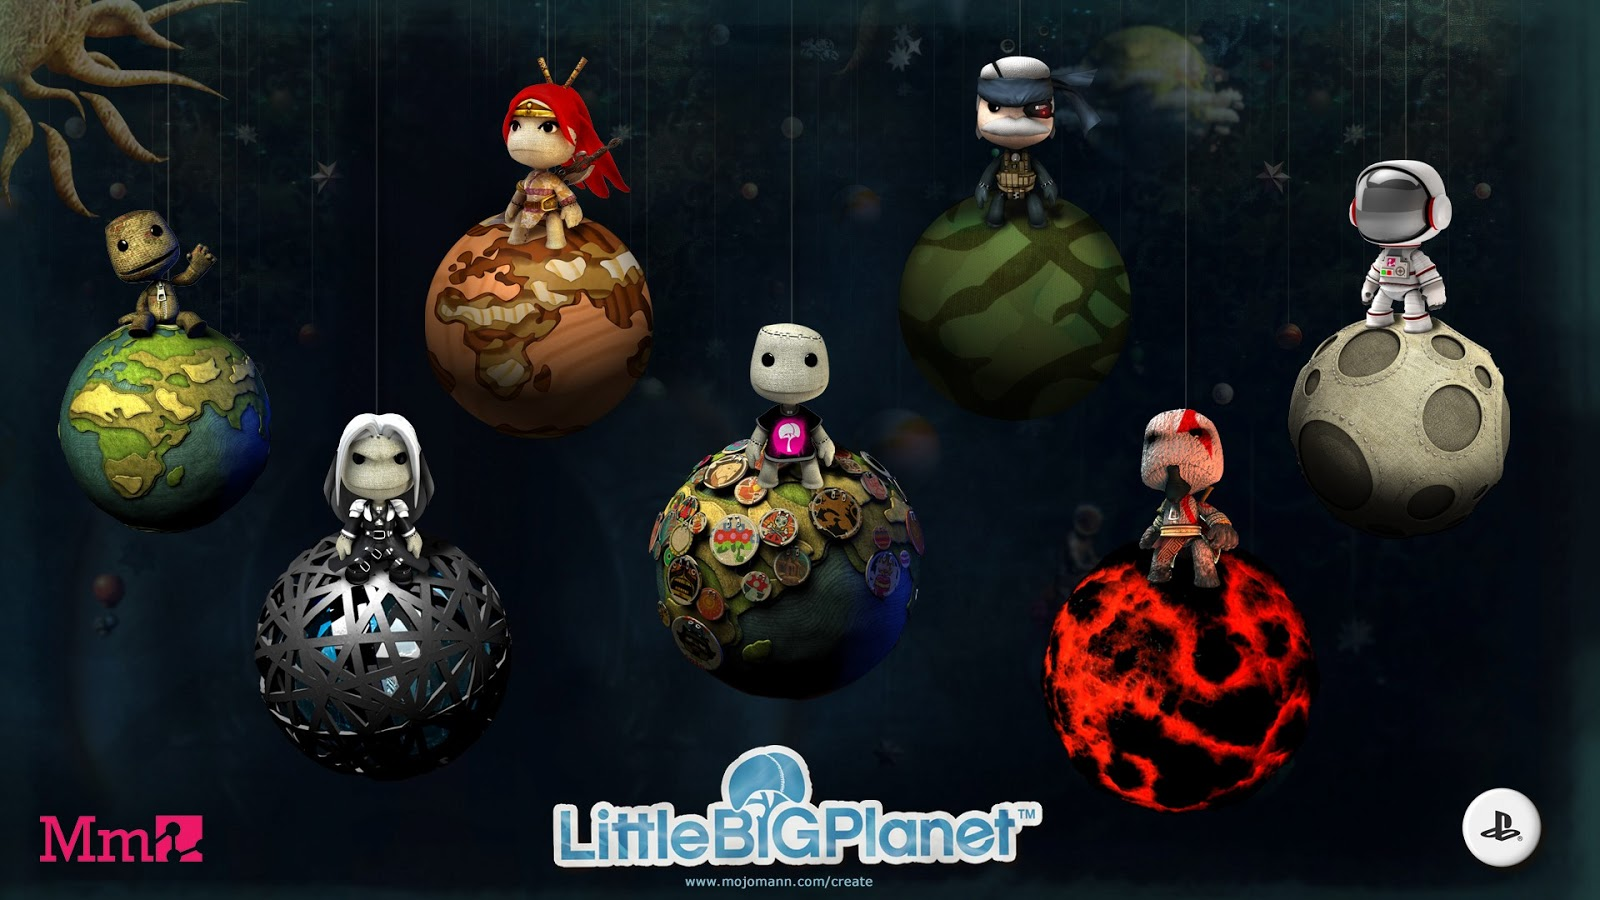 Little Big Planet Wallpaper: Pics Arrena: Little Big Planet Wallpapers-2013